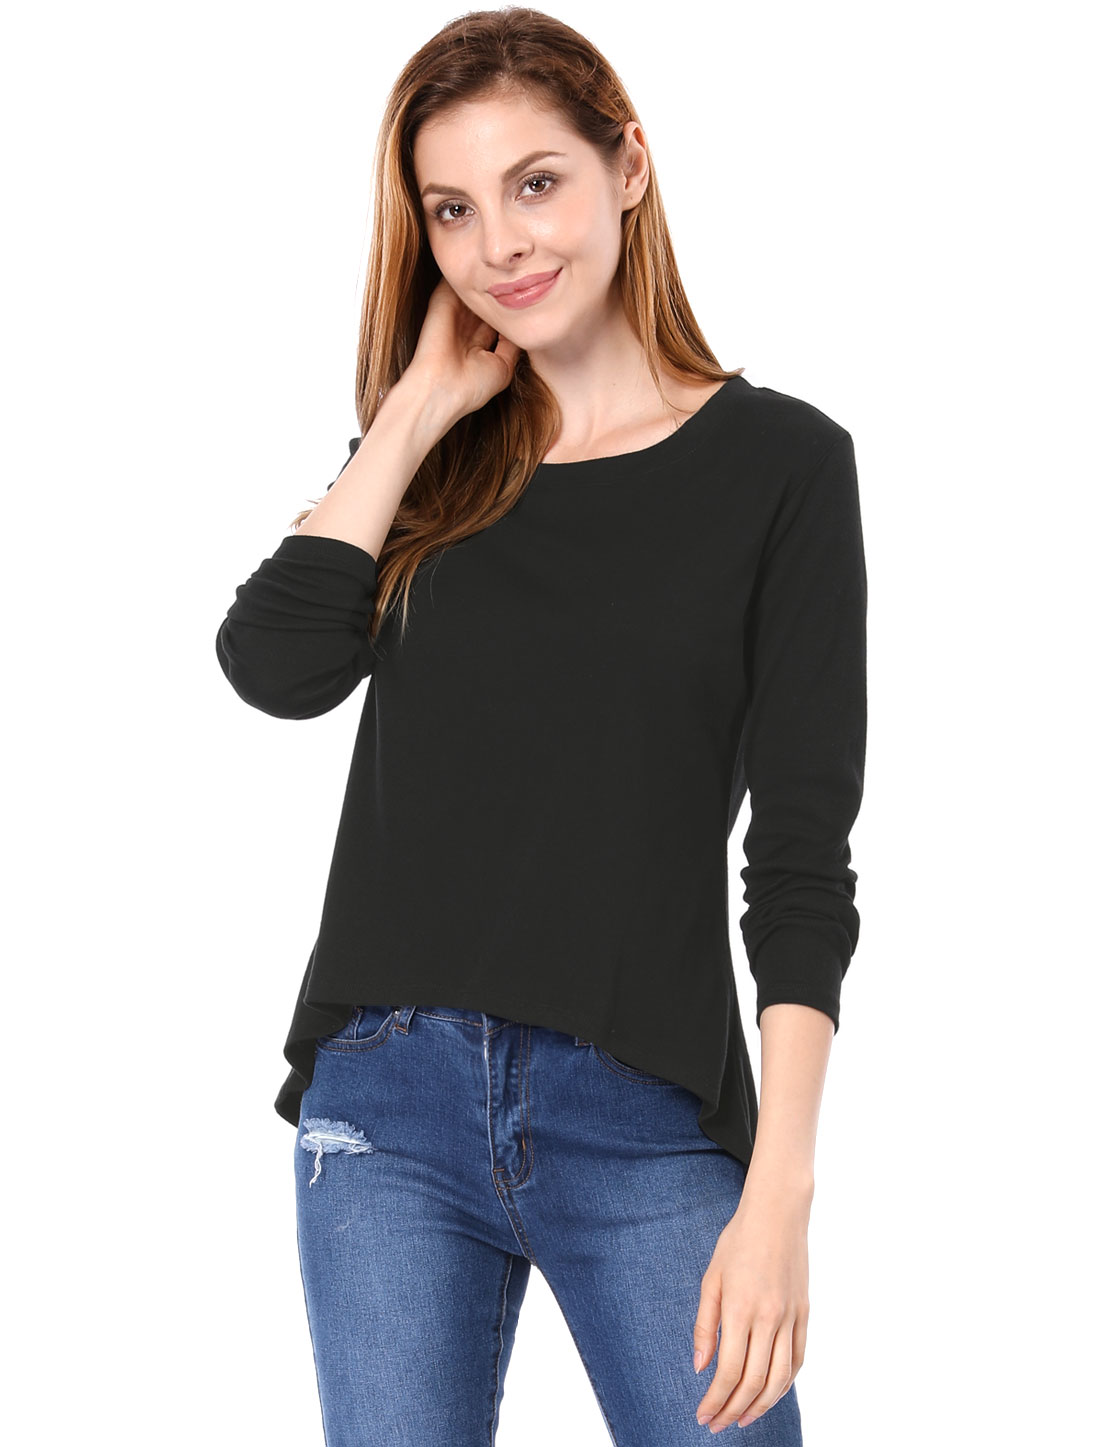 Women Scoop Neck Long Sleeves Black Asymmetric Hem Shirt S